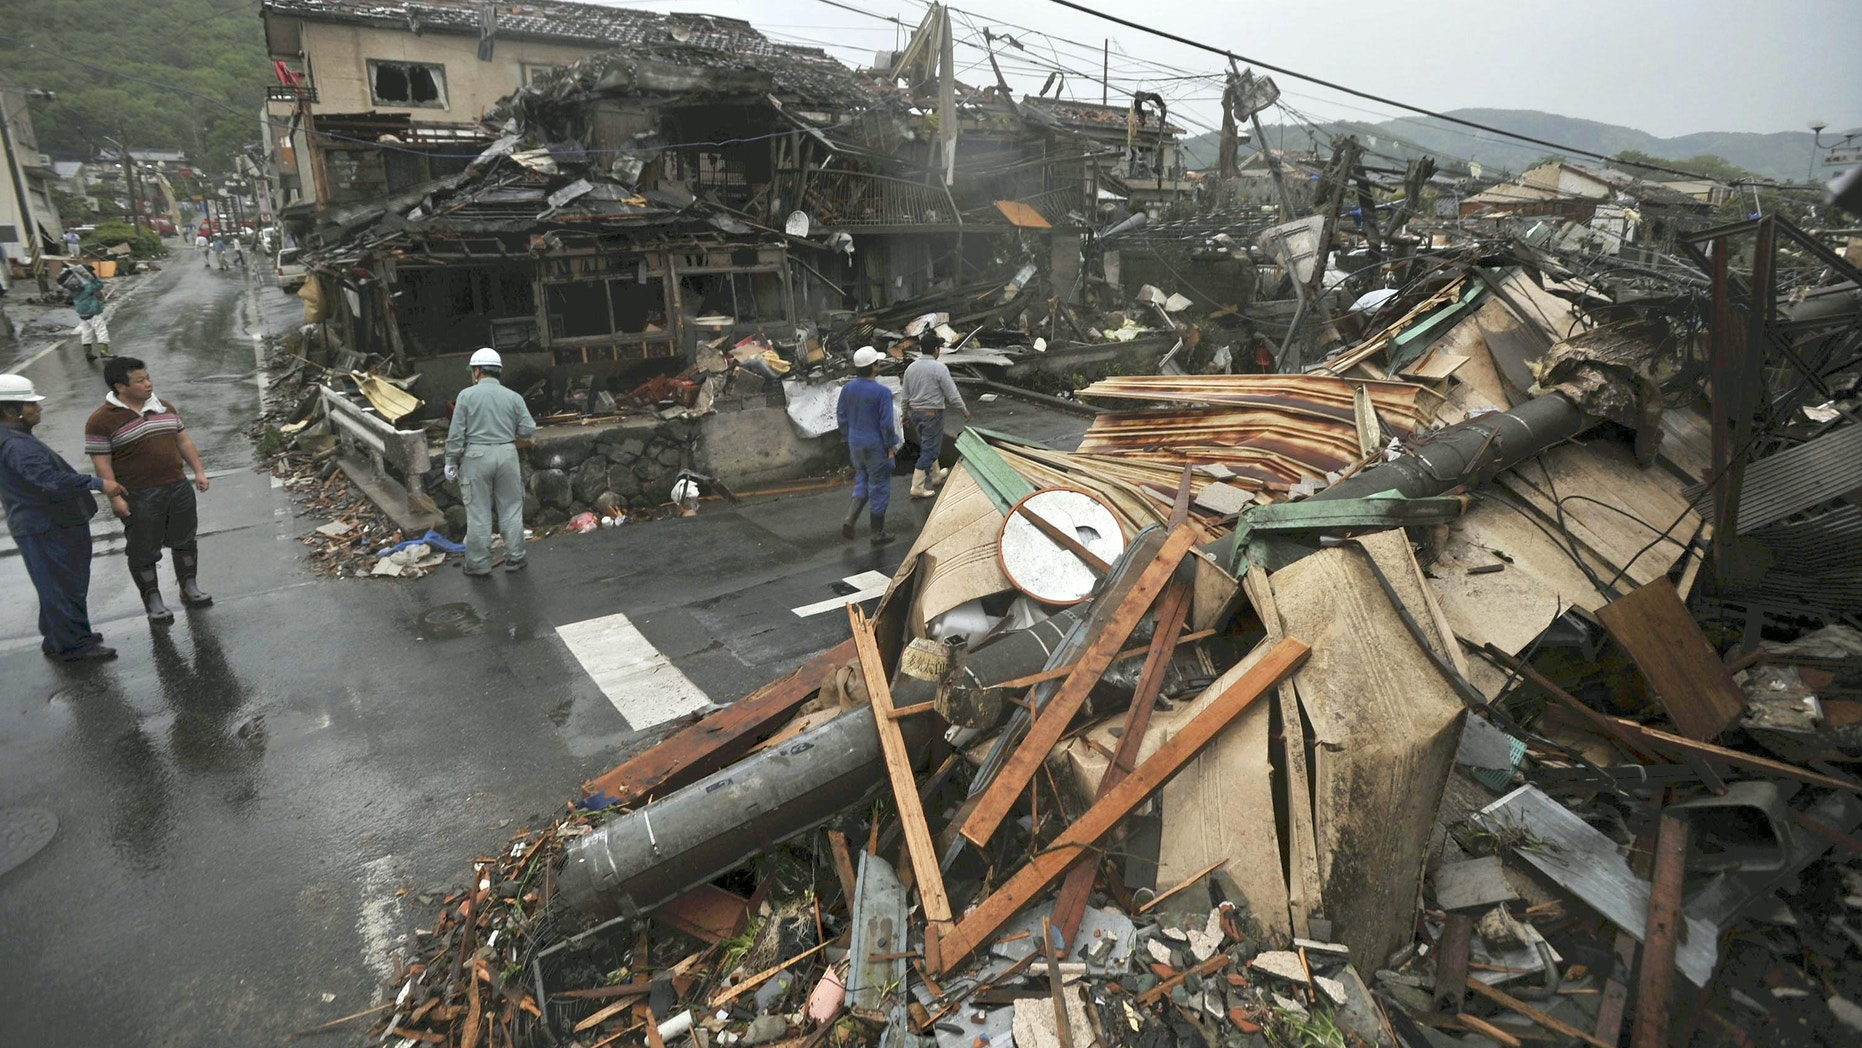 May 6, 2012: People look at damaged buildings after a tornado struck Tsukuba city, northeast of Tokyo.